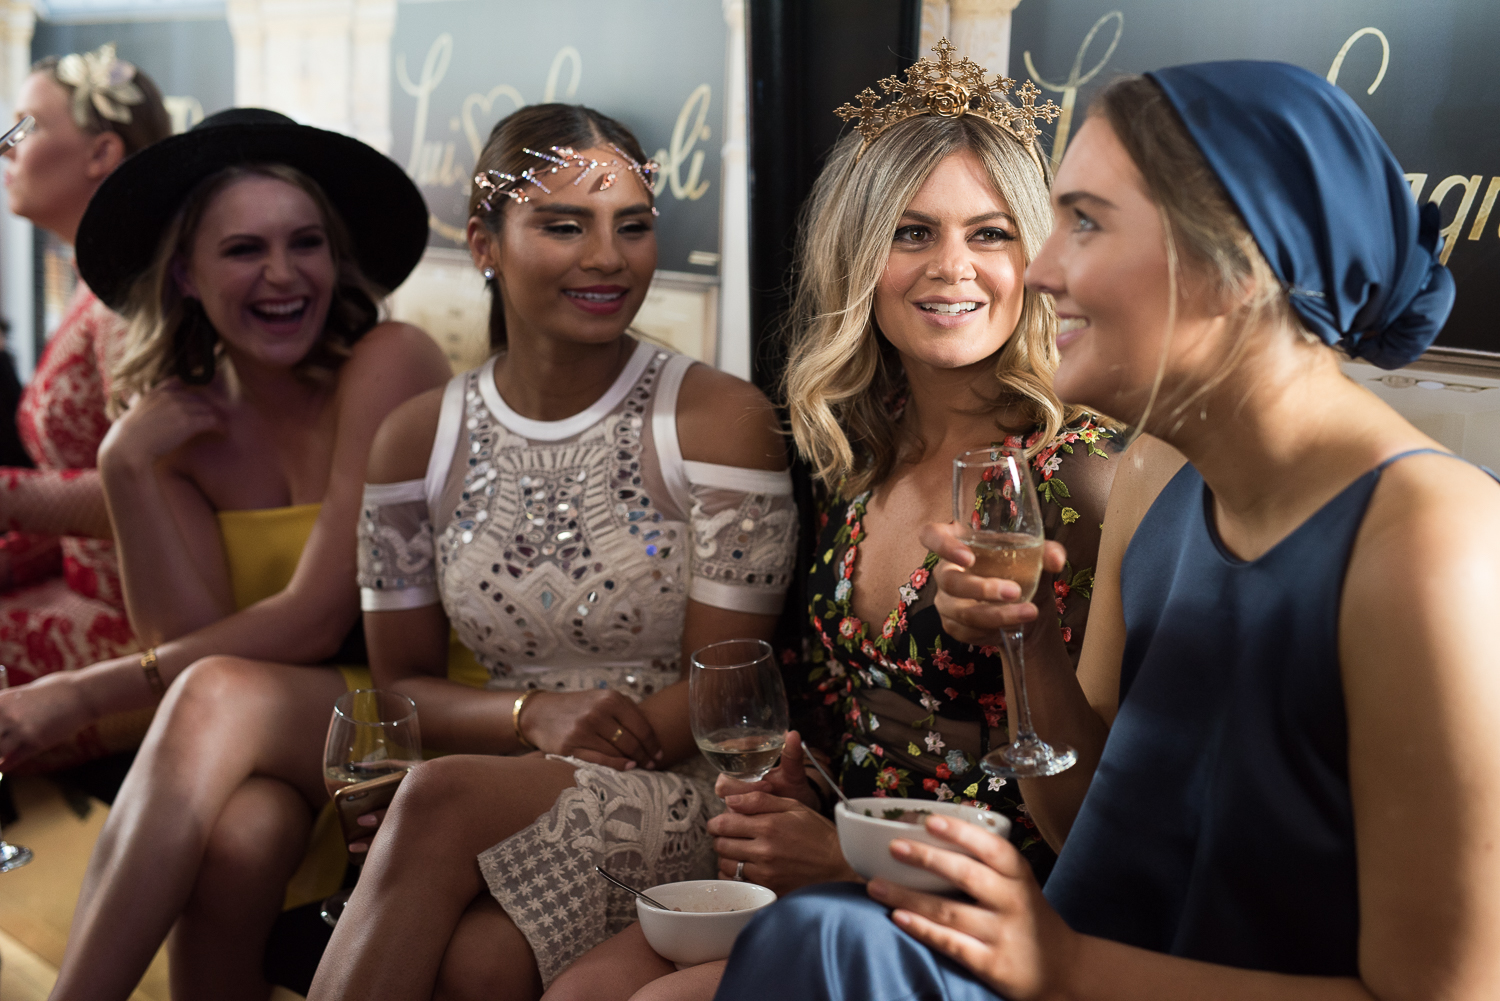 melbourne-cup-day-lavazza-whatwouldkarldo_0051